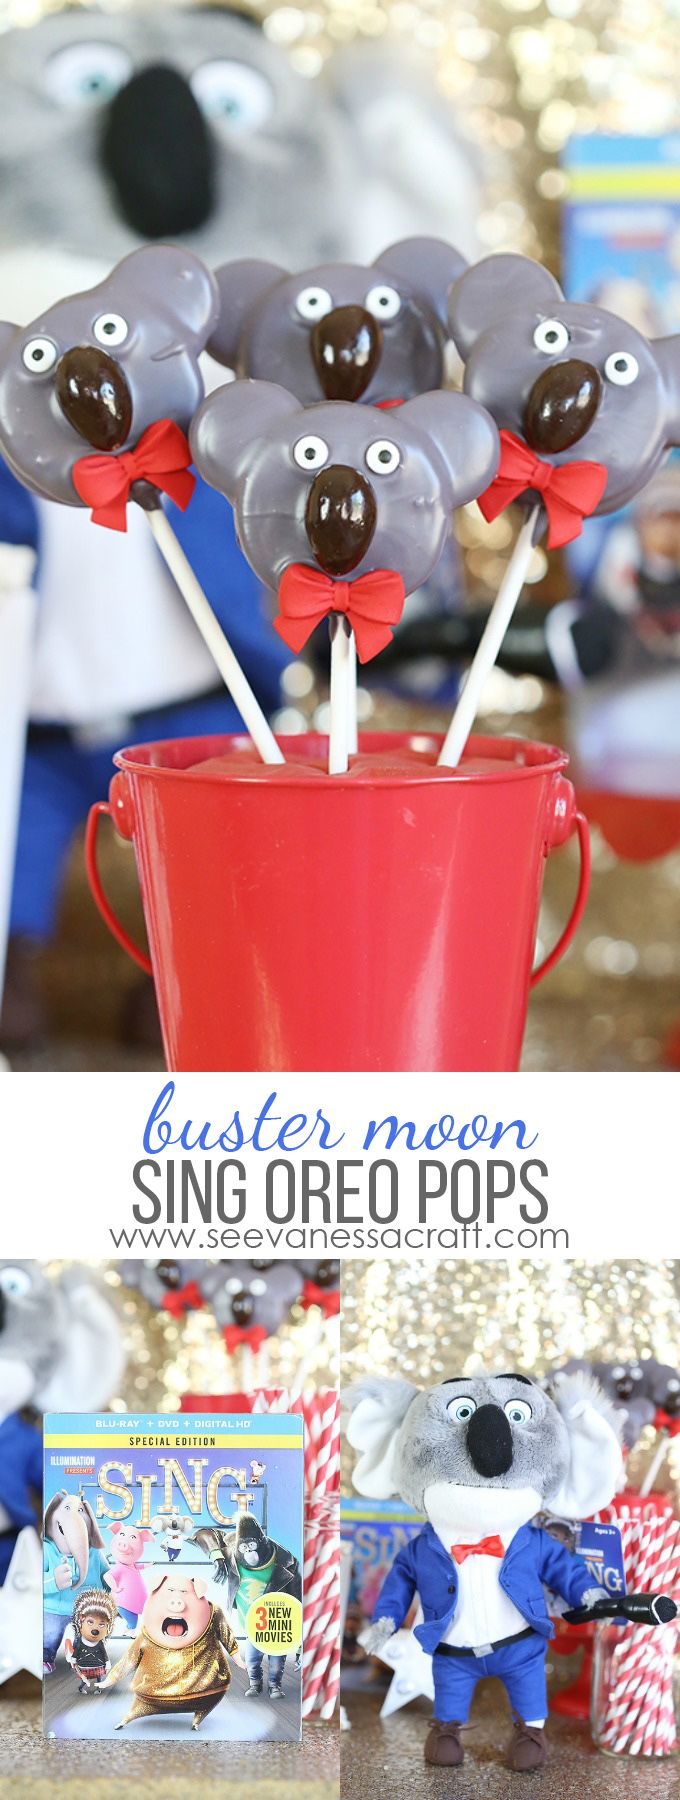 Buster Moon Oreo Pops inspired by @SingMovie, now on Blu-ray & DVD - perfect for a movie night party! #SingMovie #SingSquad #ad